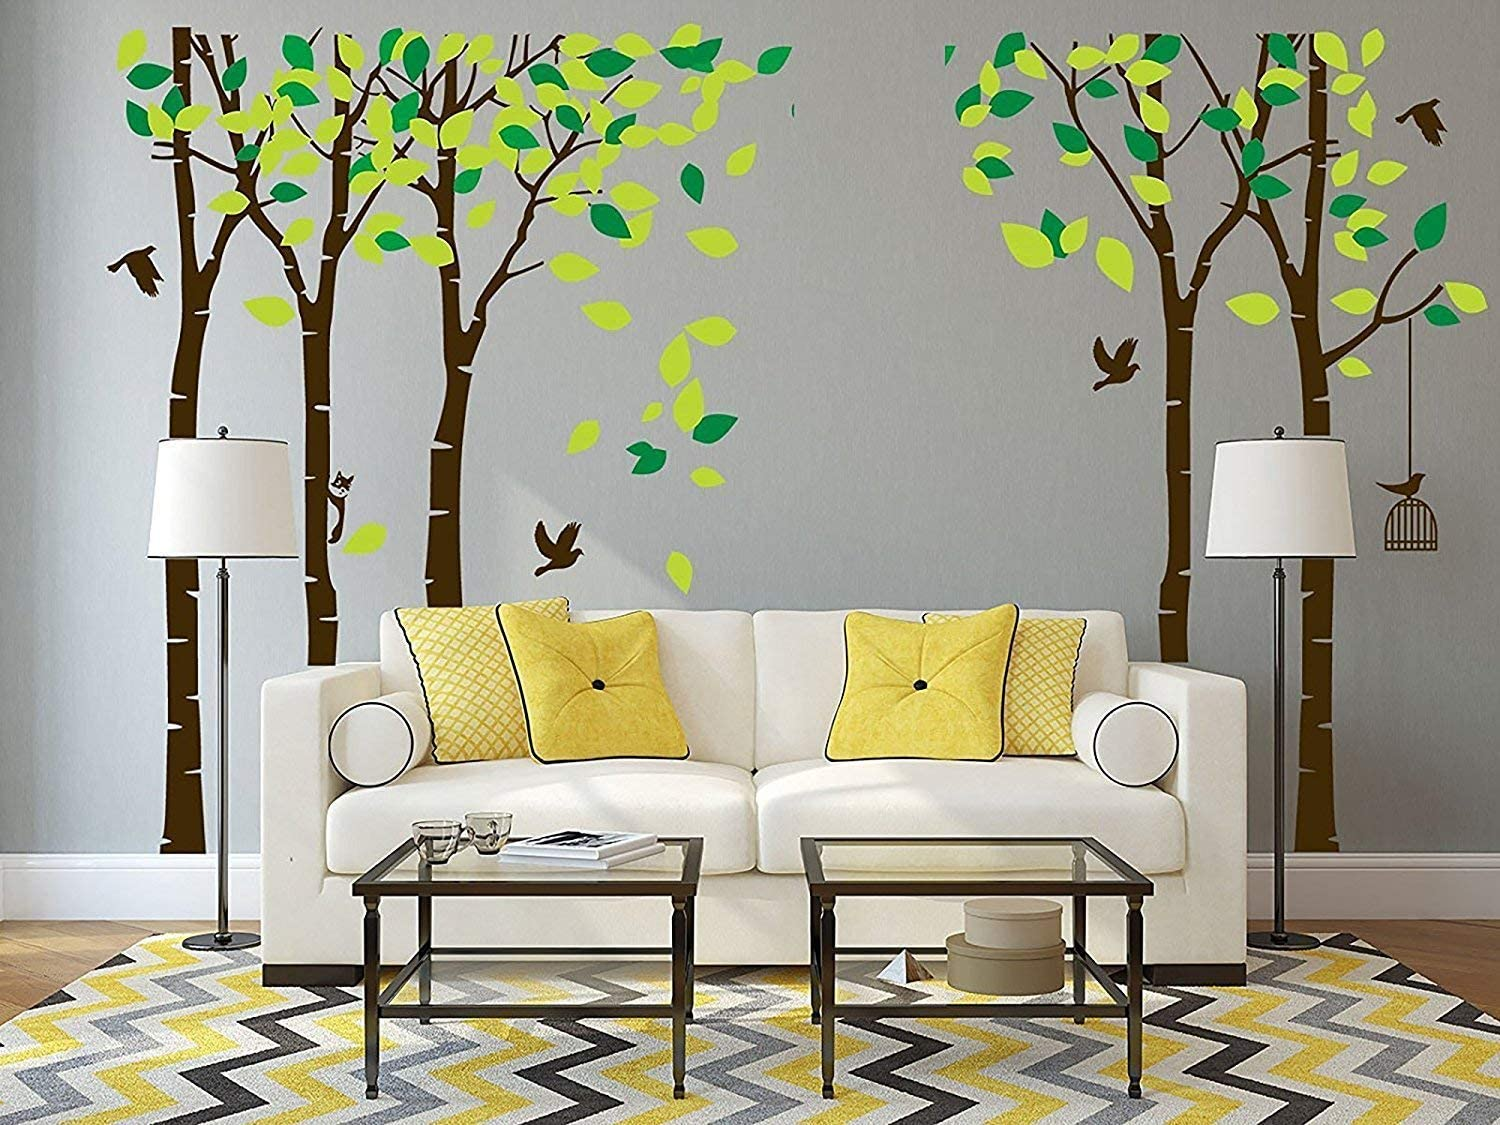 ANBER Giant Jungle Tree Wall Decal Removable Vinyl Mural Art Wall Stickers for Kids Nursery Bedroom Living Room